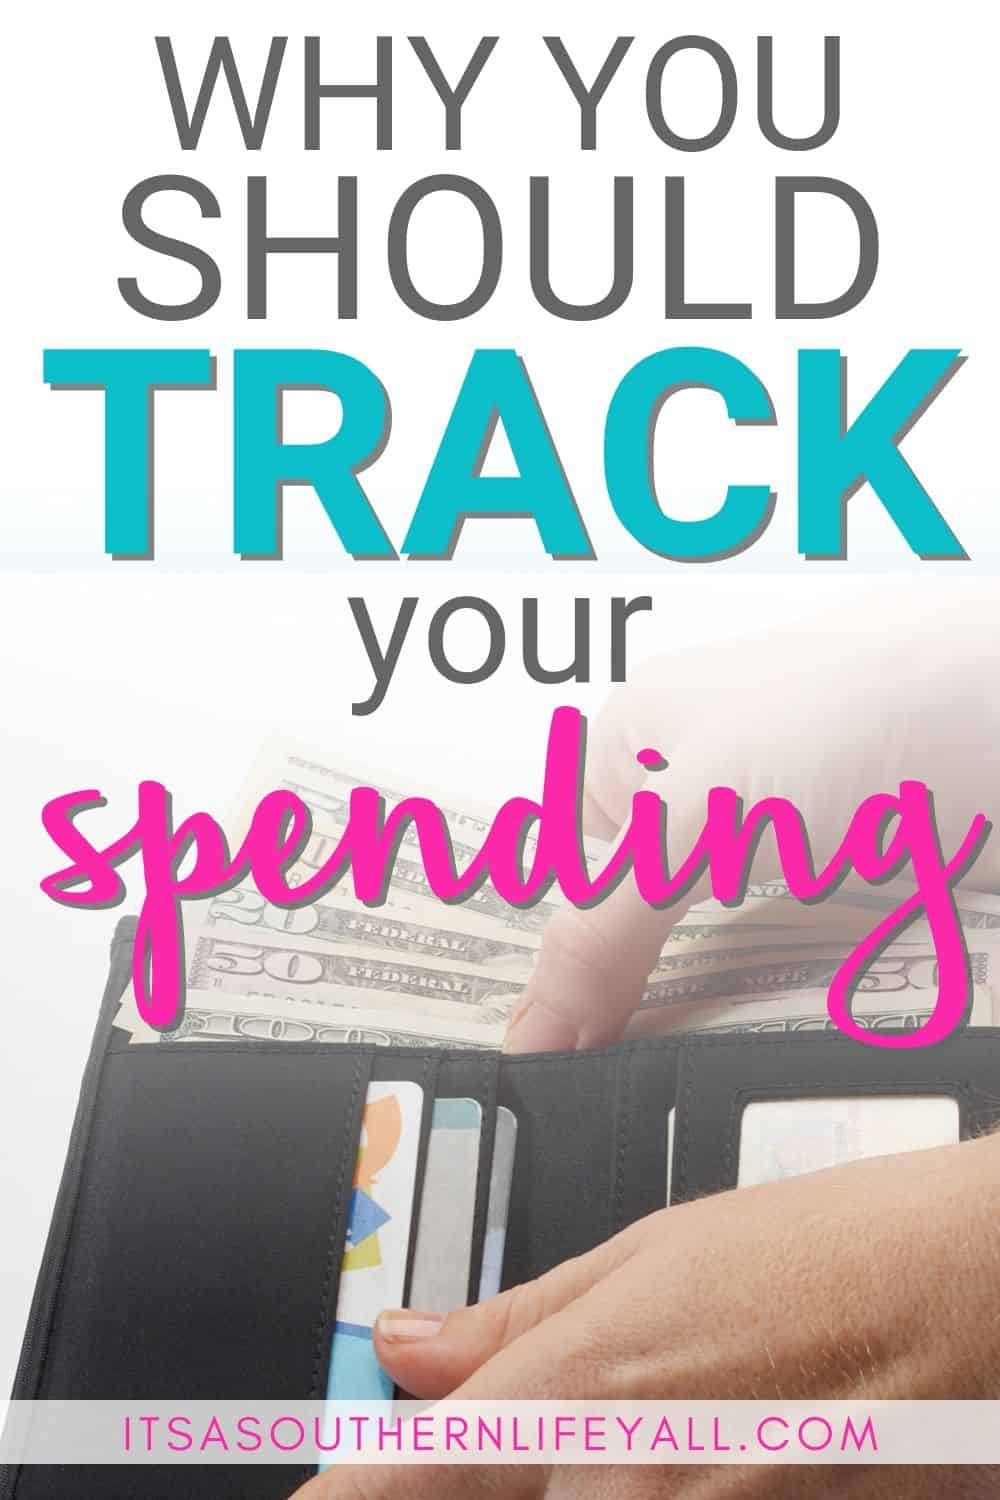 Wallet with money with text overlay Why you should track your spending